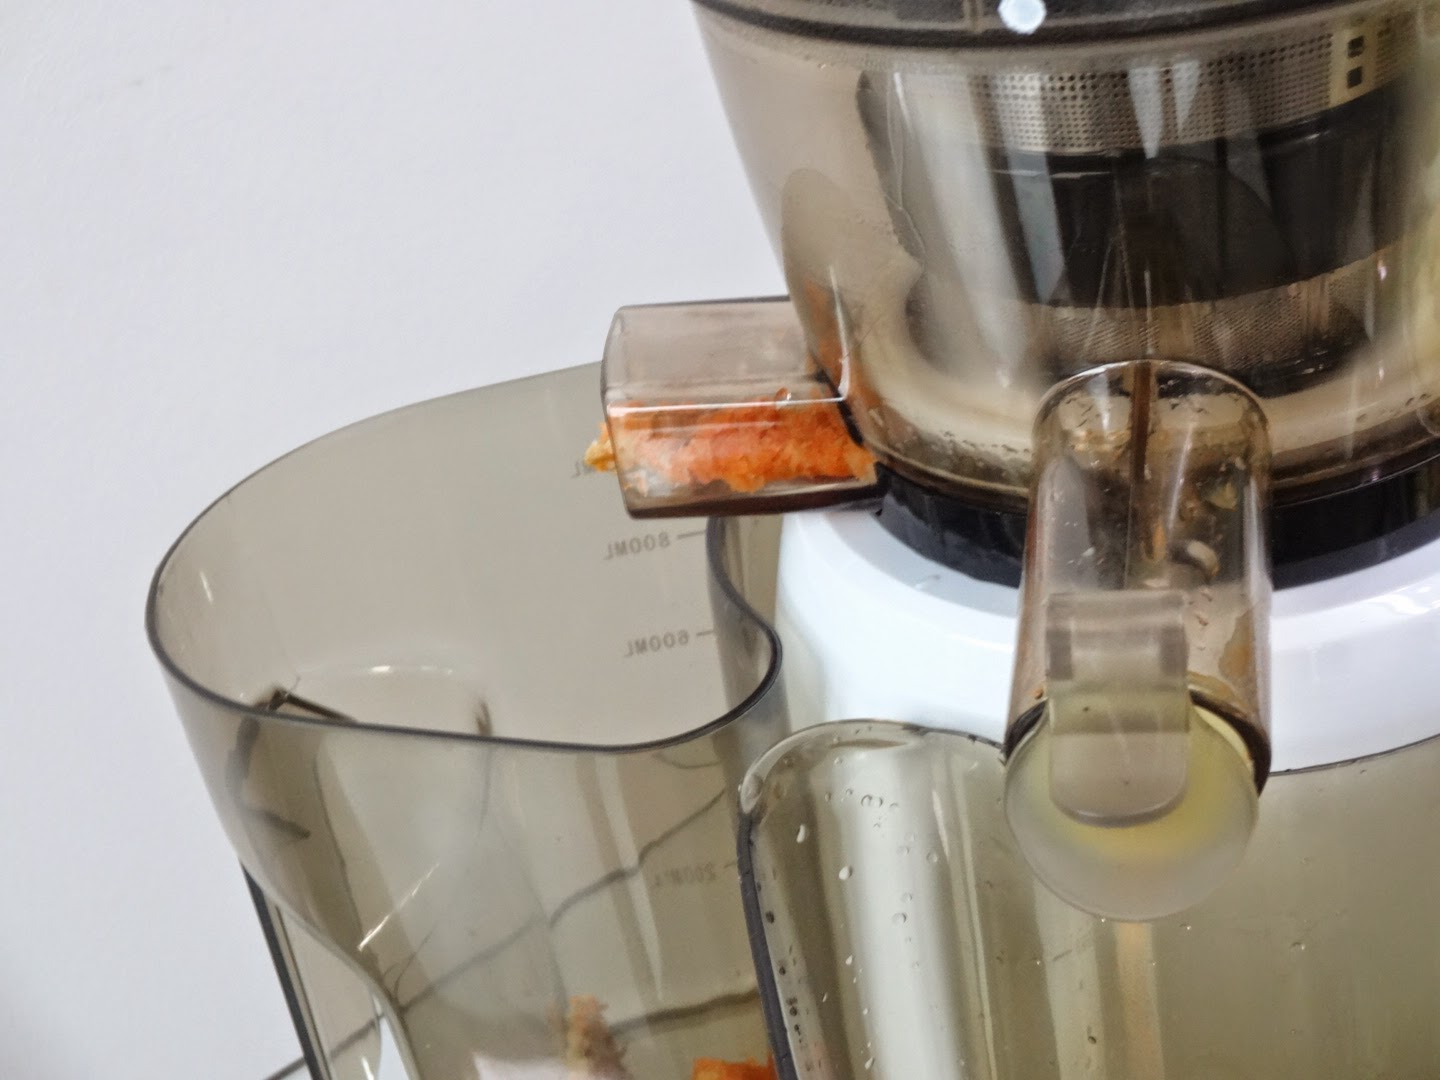 Hyundai Slow Juicer 7730 : a day in the life of a BE@RBRICK: Hyundai Slow Juicer [Updated]